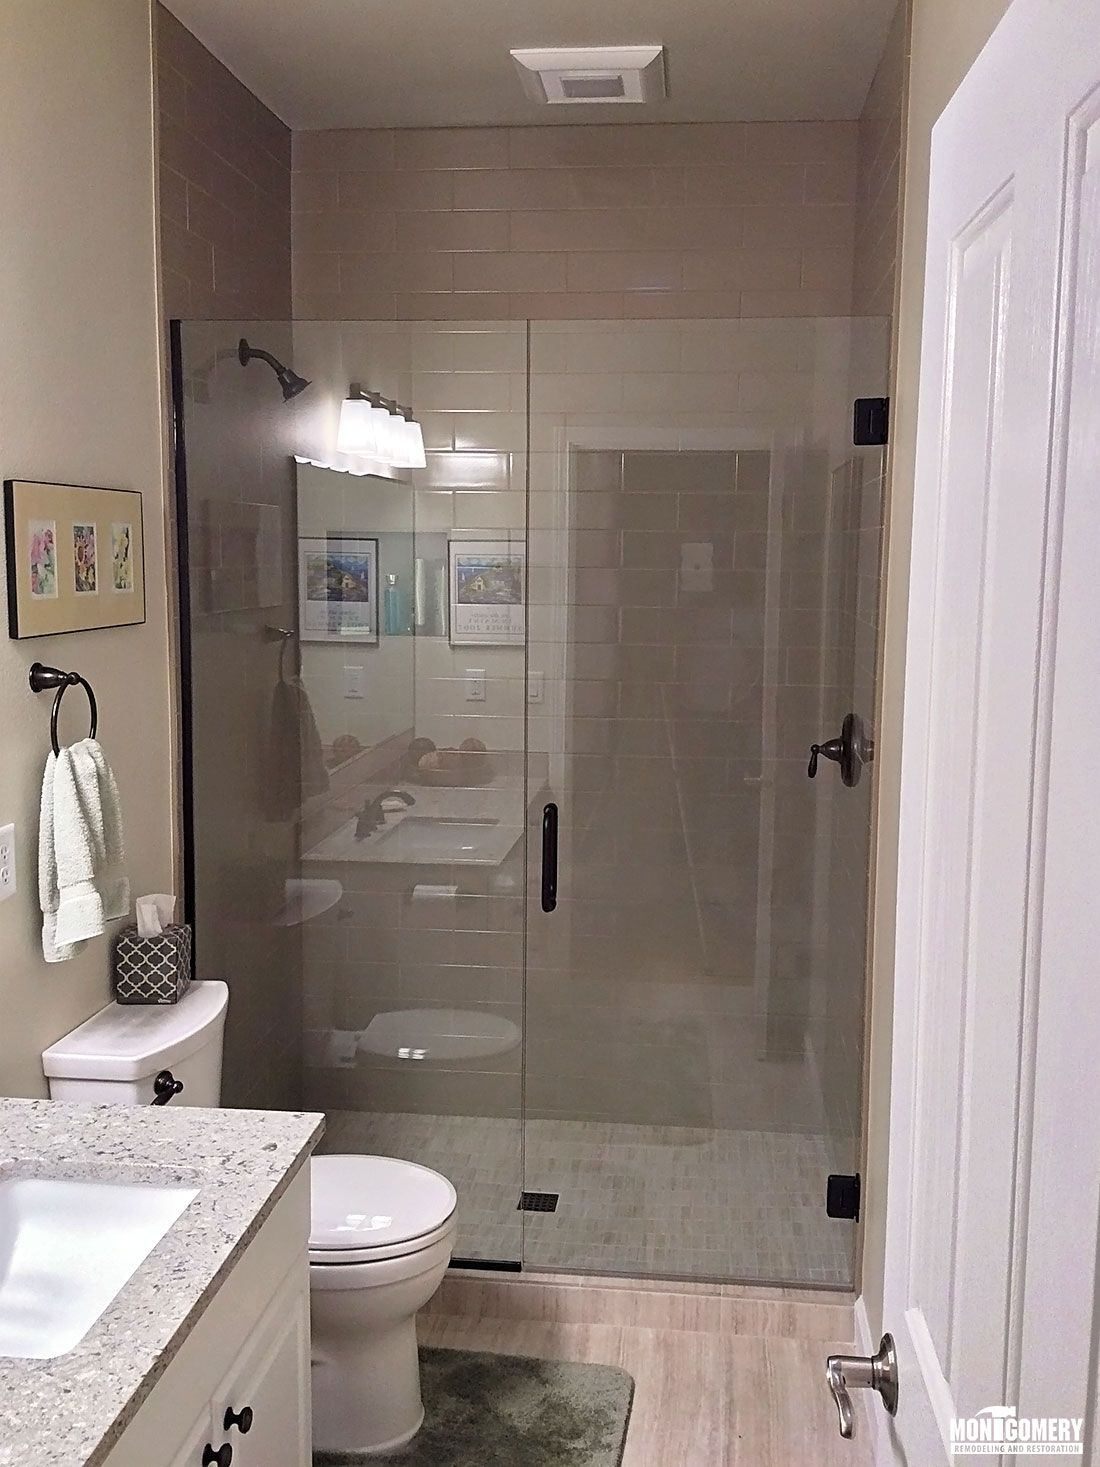 Multiple Bathroom Upgrades Montgomery Remodeling And Restoration - Small bathroom upgrades